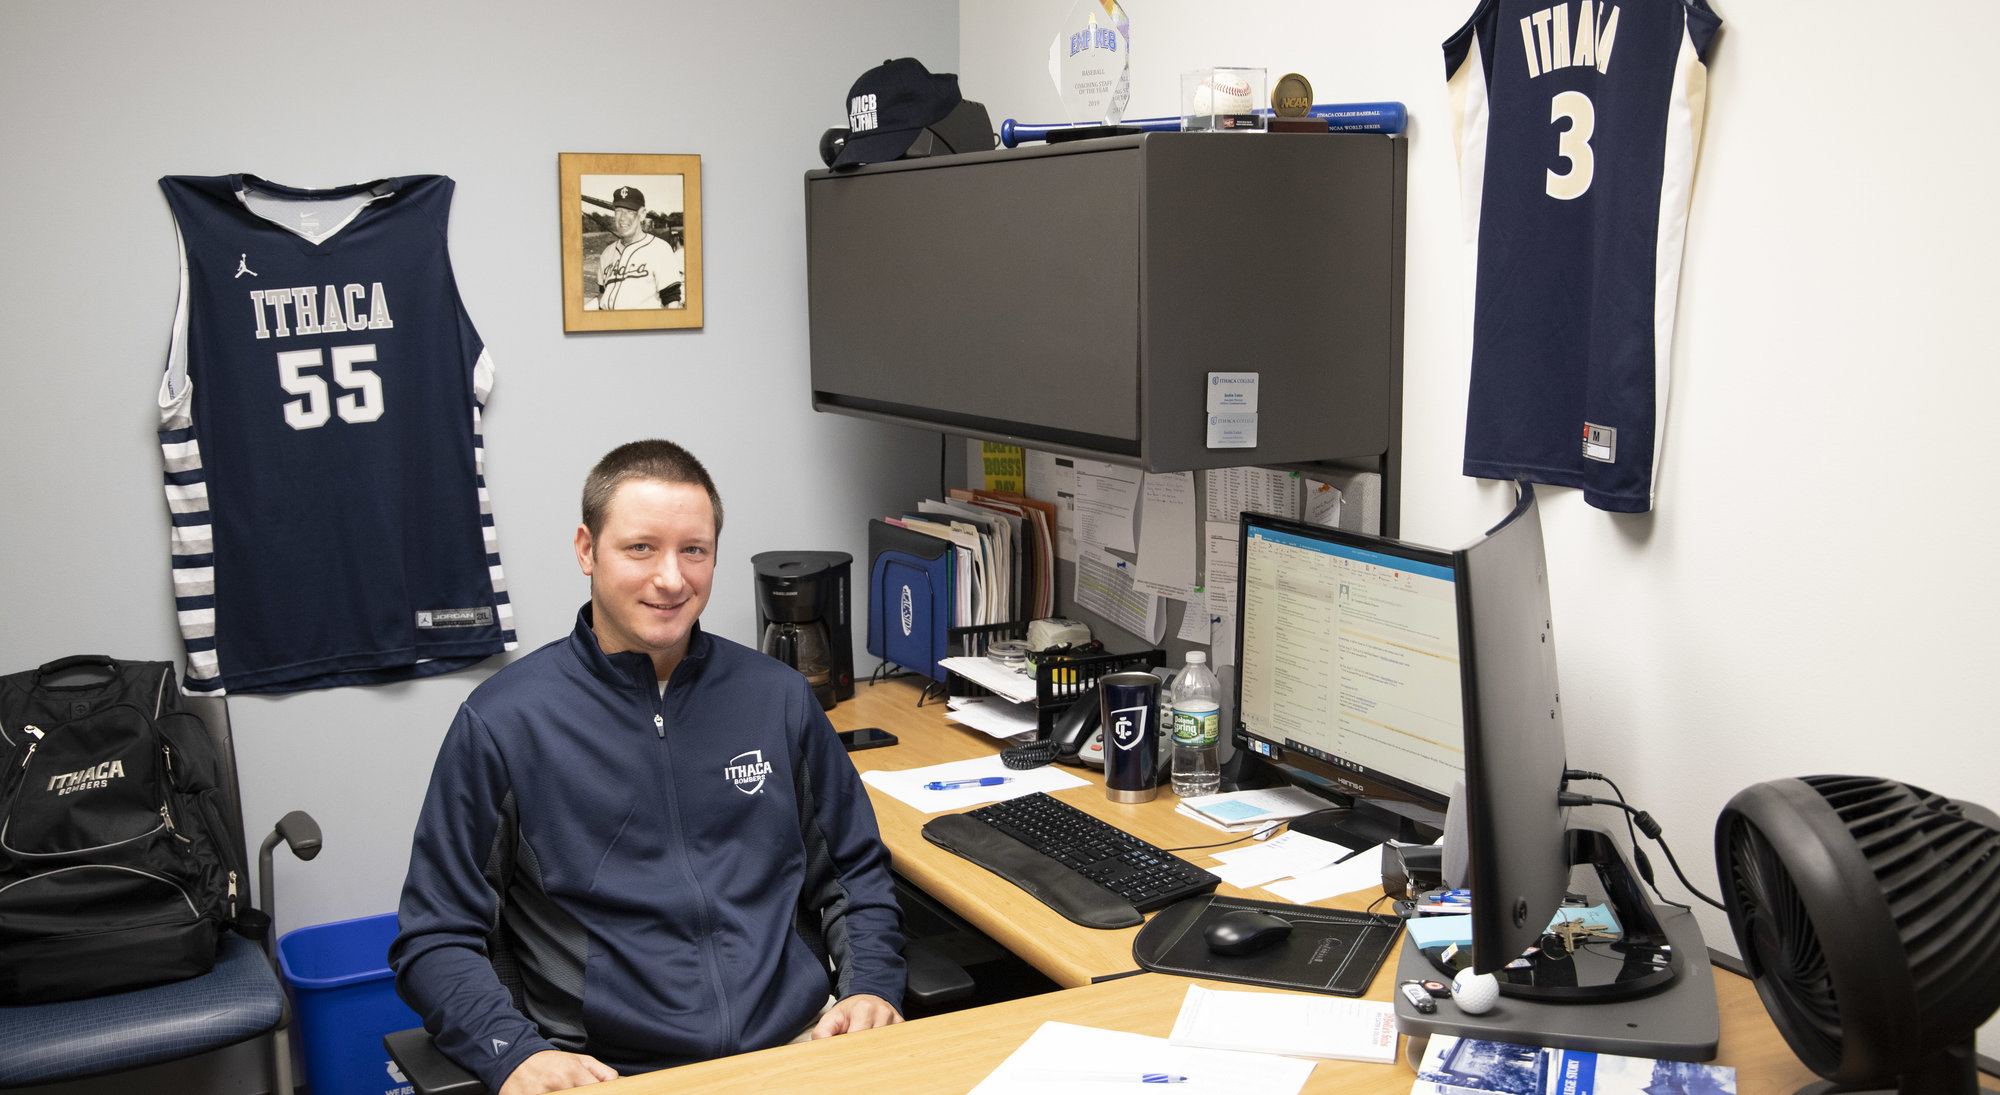 Justin Lutes as been associate athletic director for athletic communications at Ithaca College for the past three years.